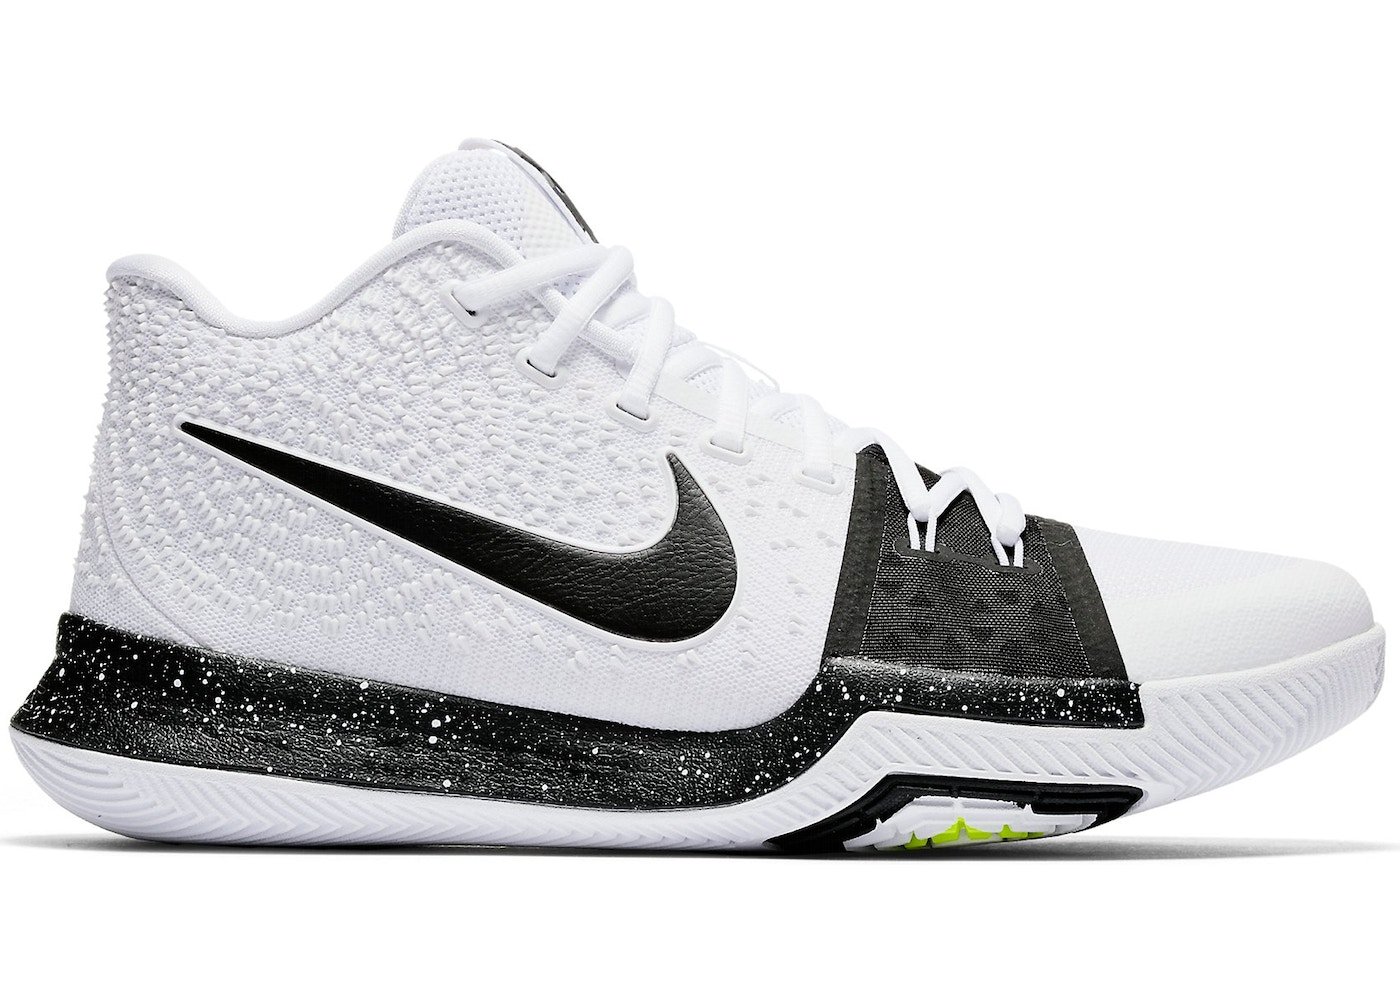 new style d3e83 d40cc Sell. or Ask. Size  13. View All Bids. Kyrie 3 TB White Black